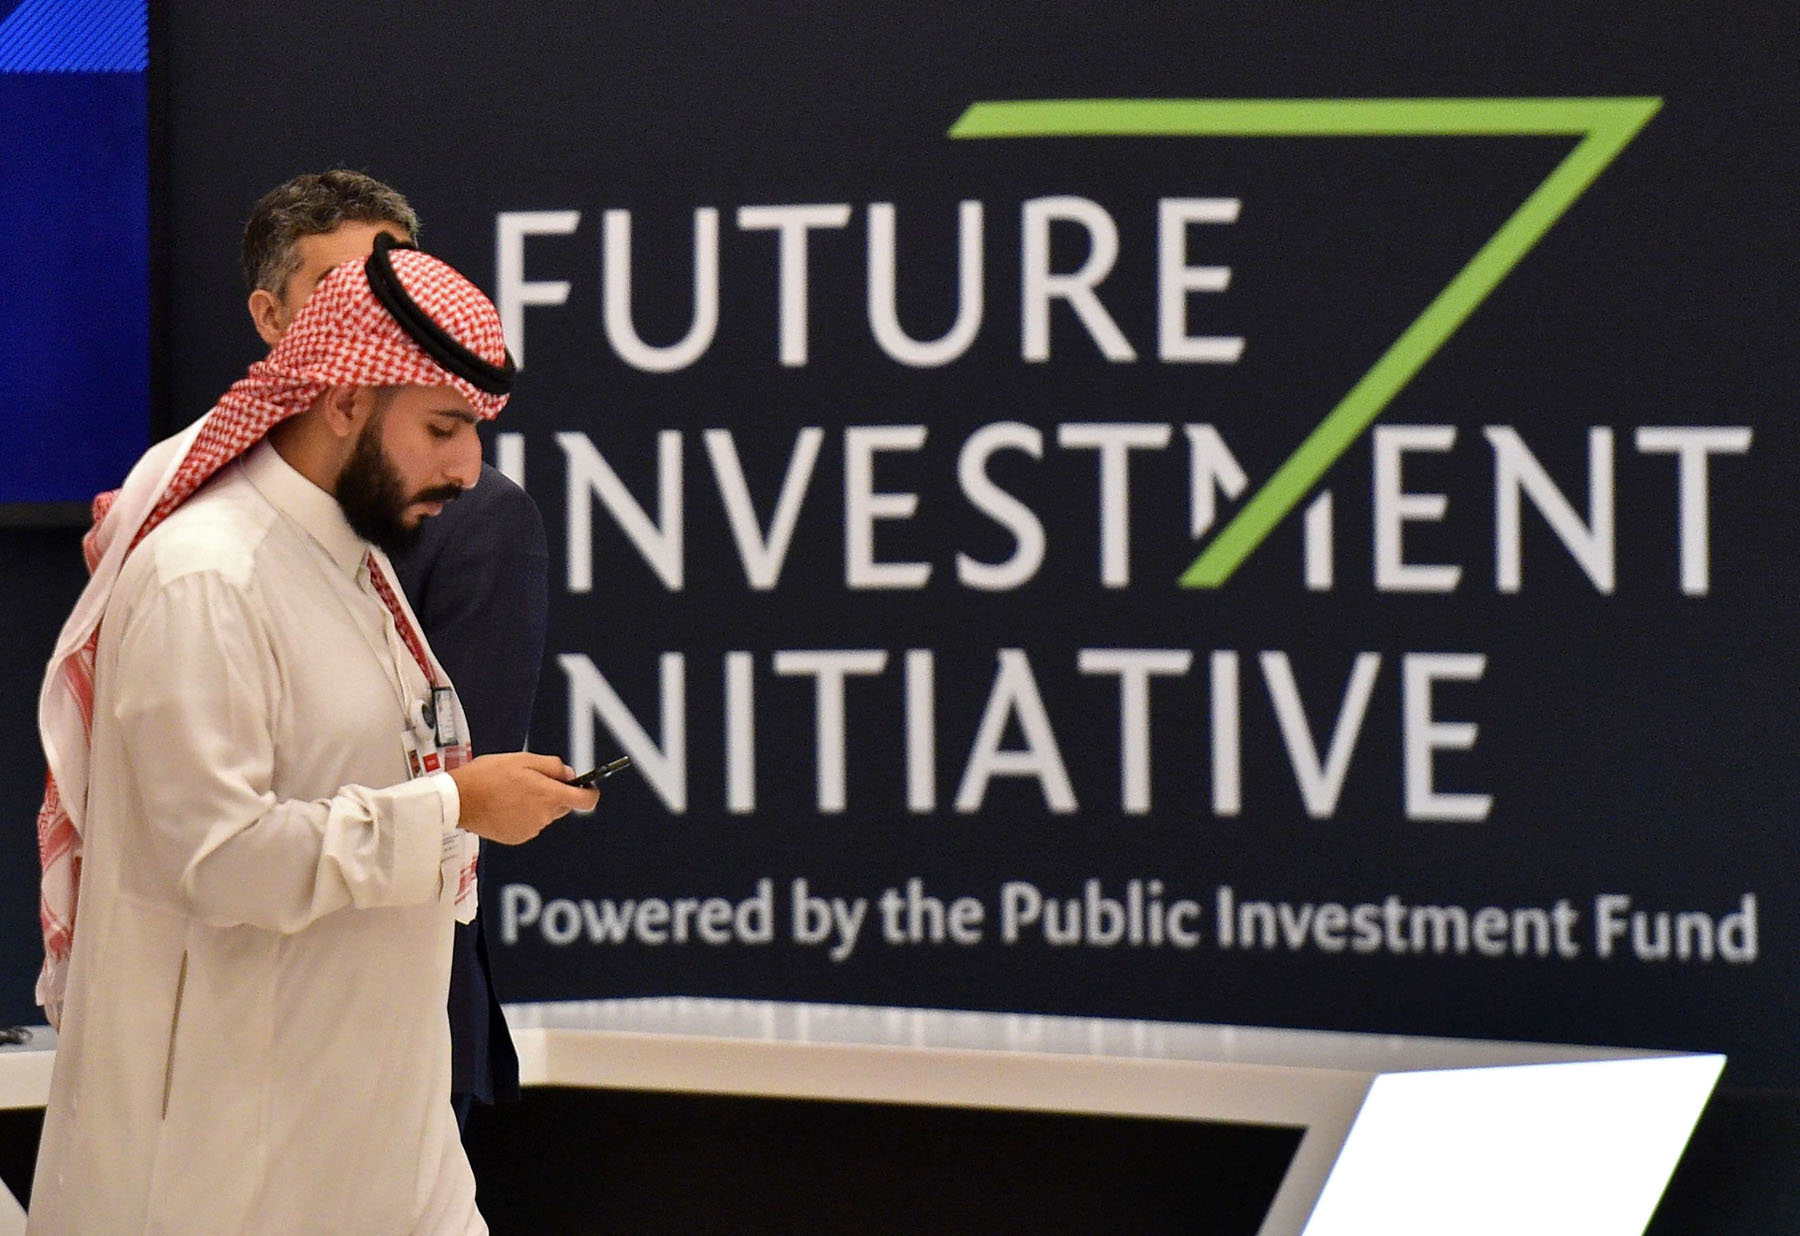 A Saudi man walks past a sign at the start of the Future Investment Initiative (FII) in Riyadh, on October 23. (AFP)